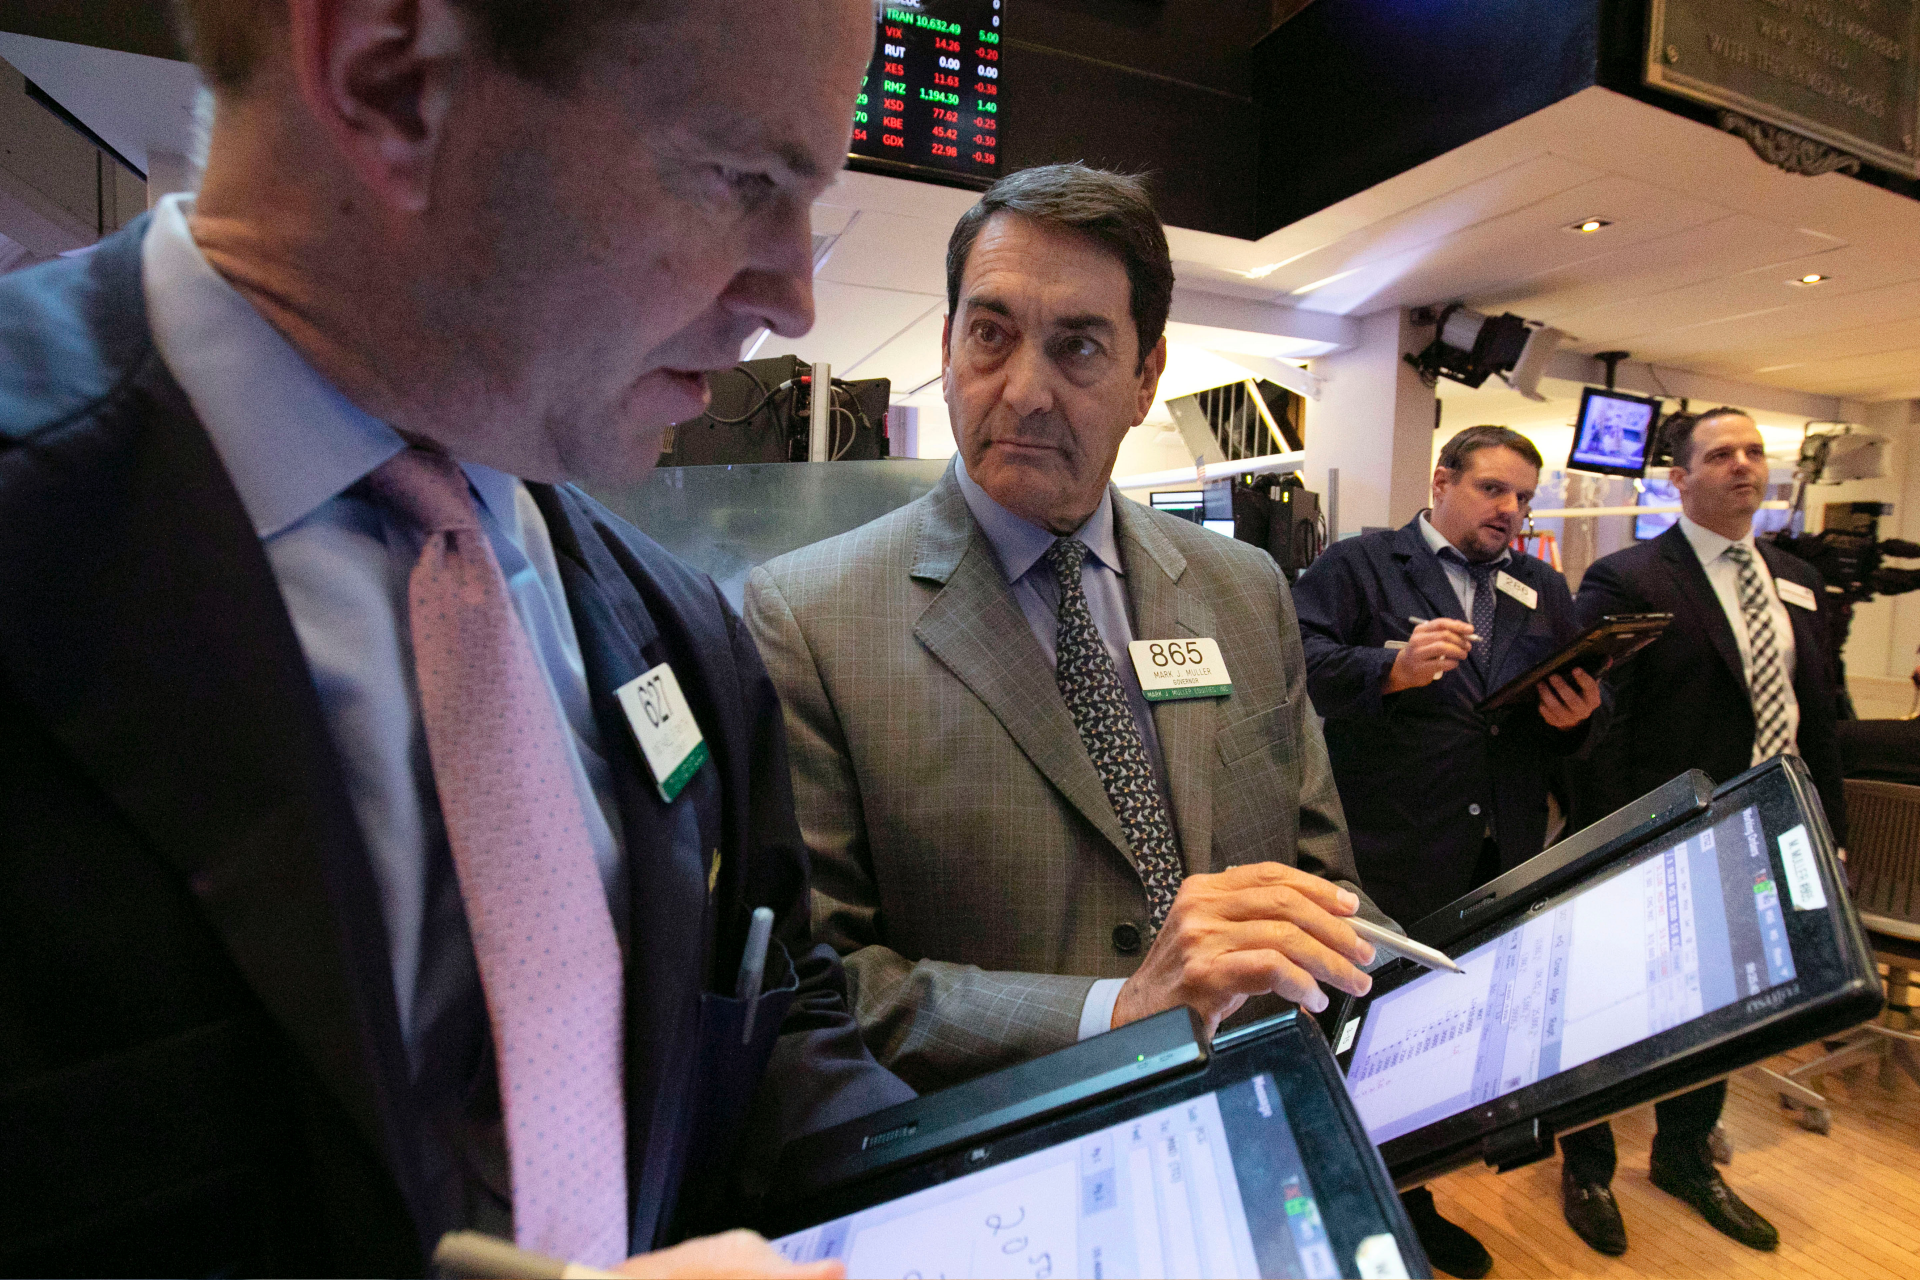 Stocks climb, putting S&P 500 on track for 4th weekly gain